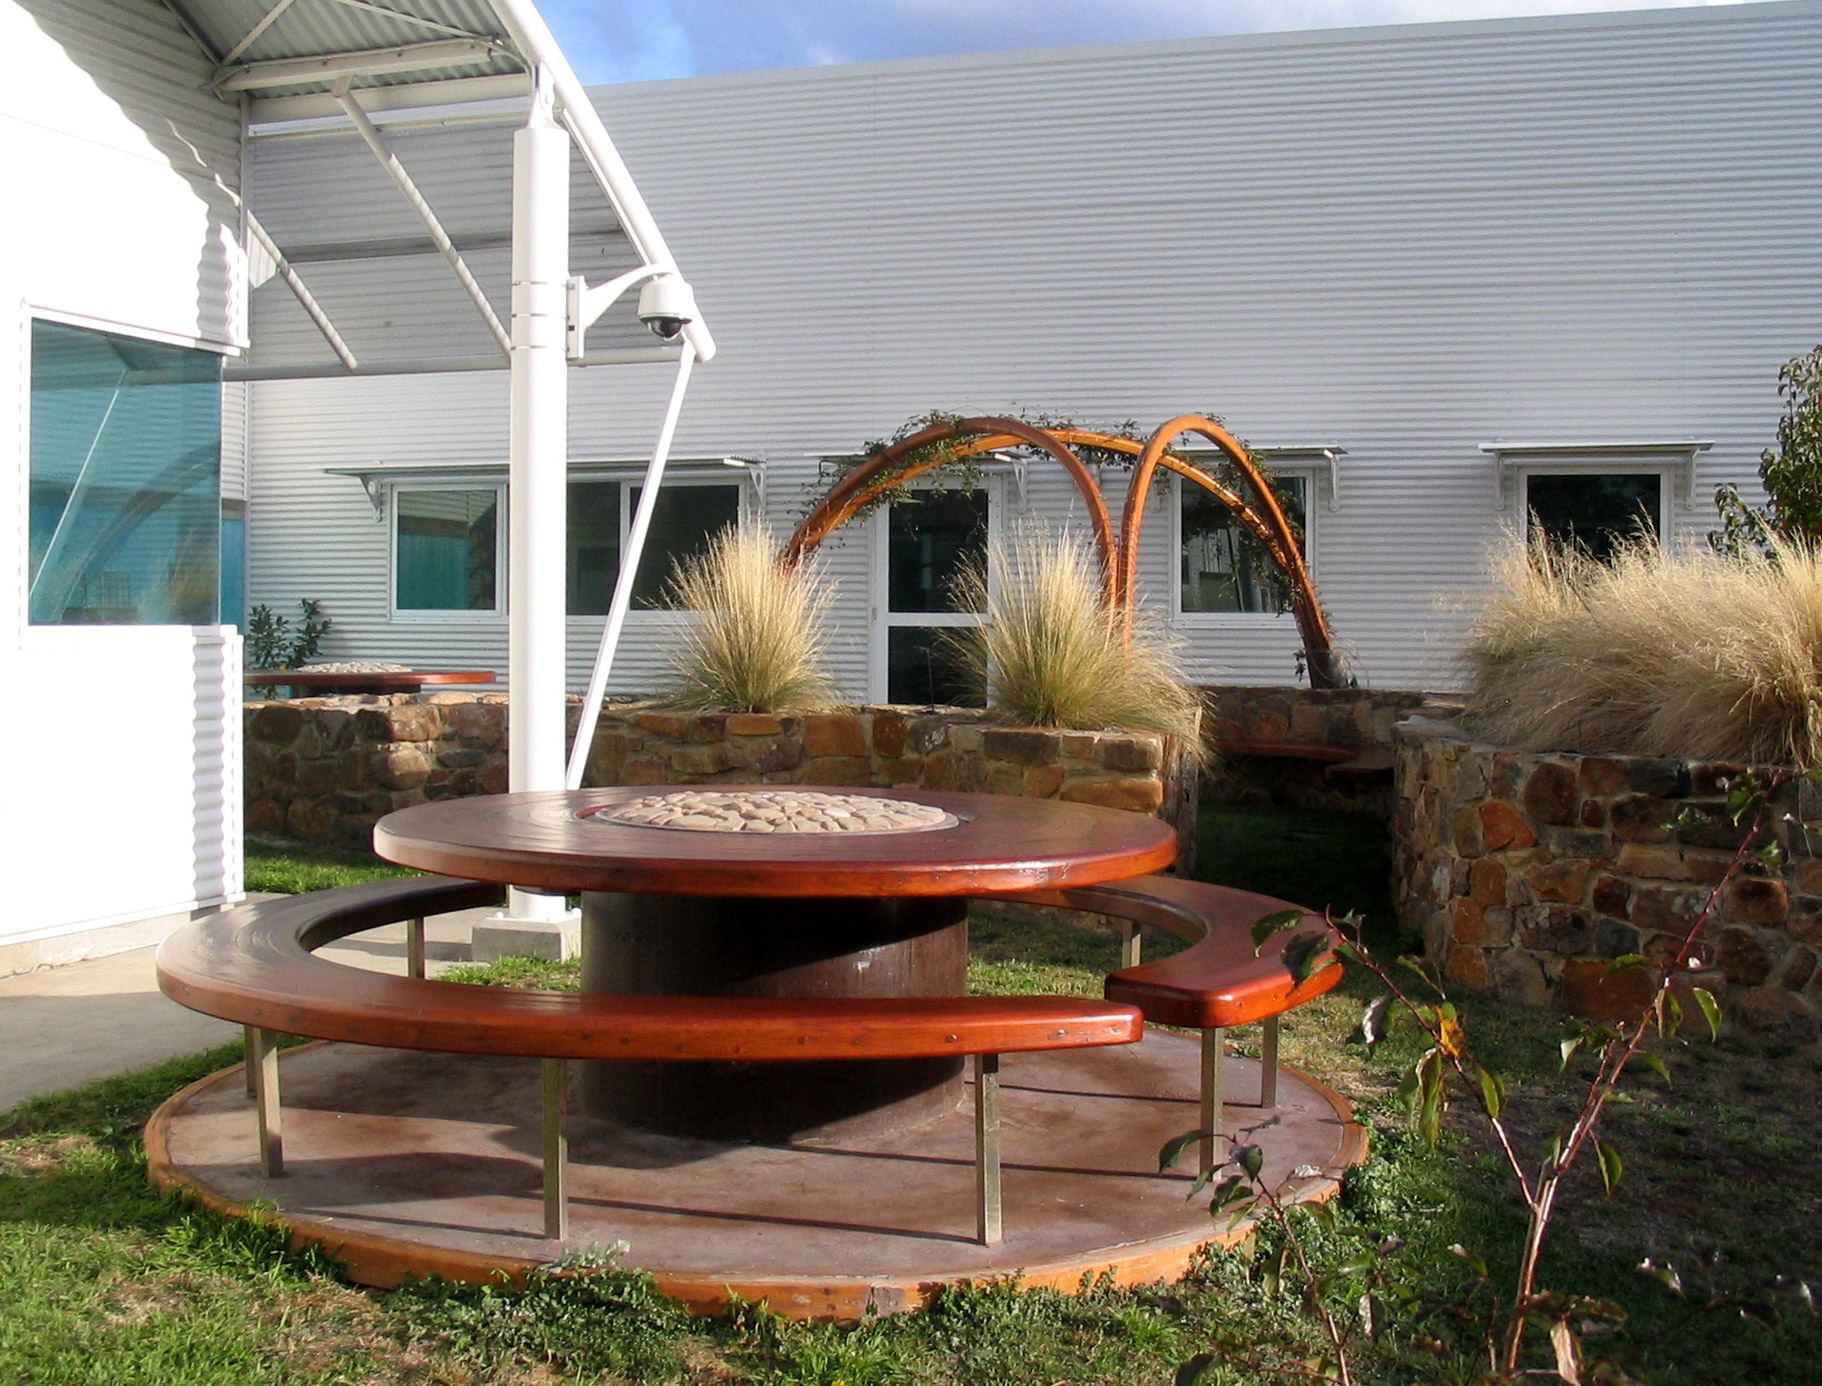 Forensic Science Lab Outside Table Curved Wood Creations Tasmania